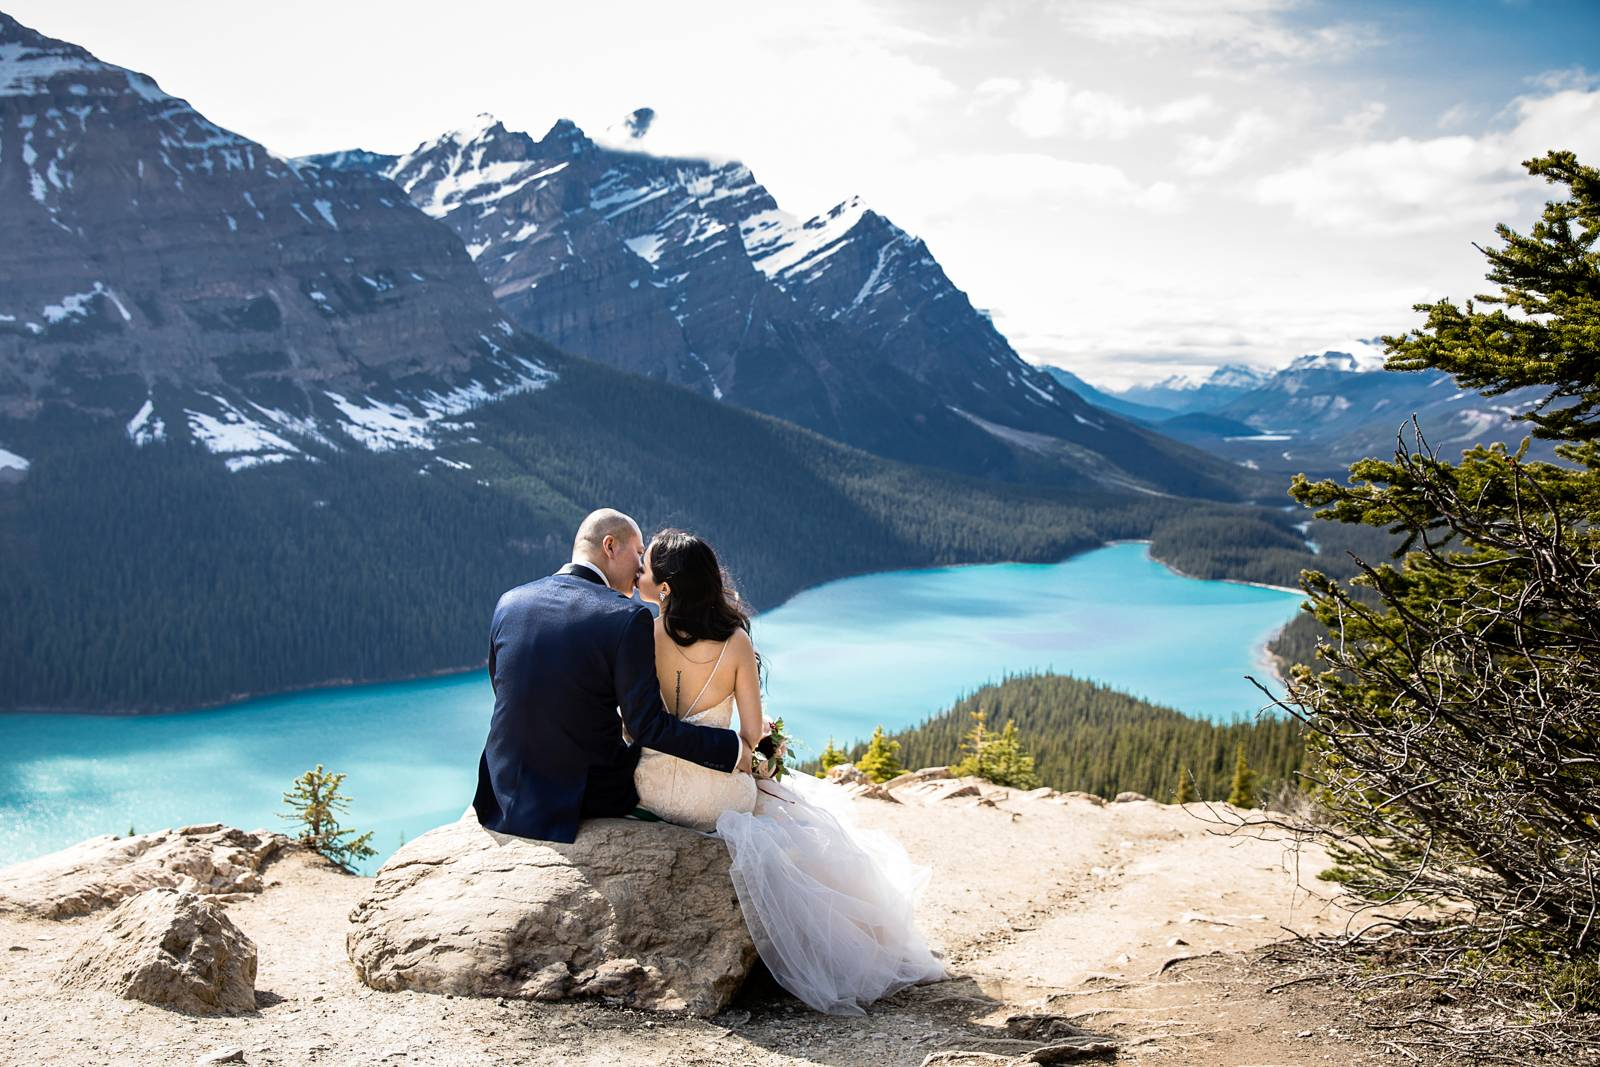 Banff Canmore Lake Louise Calgary Rocky Mountain Wedding: Bride And Groom Rocky Mountain Photo Session